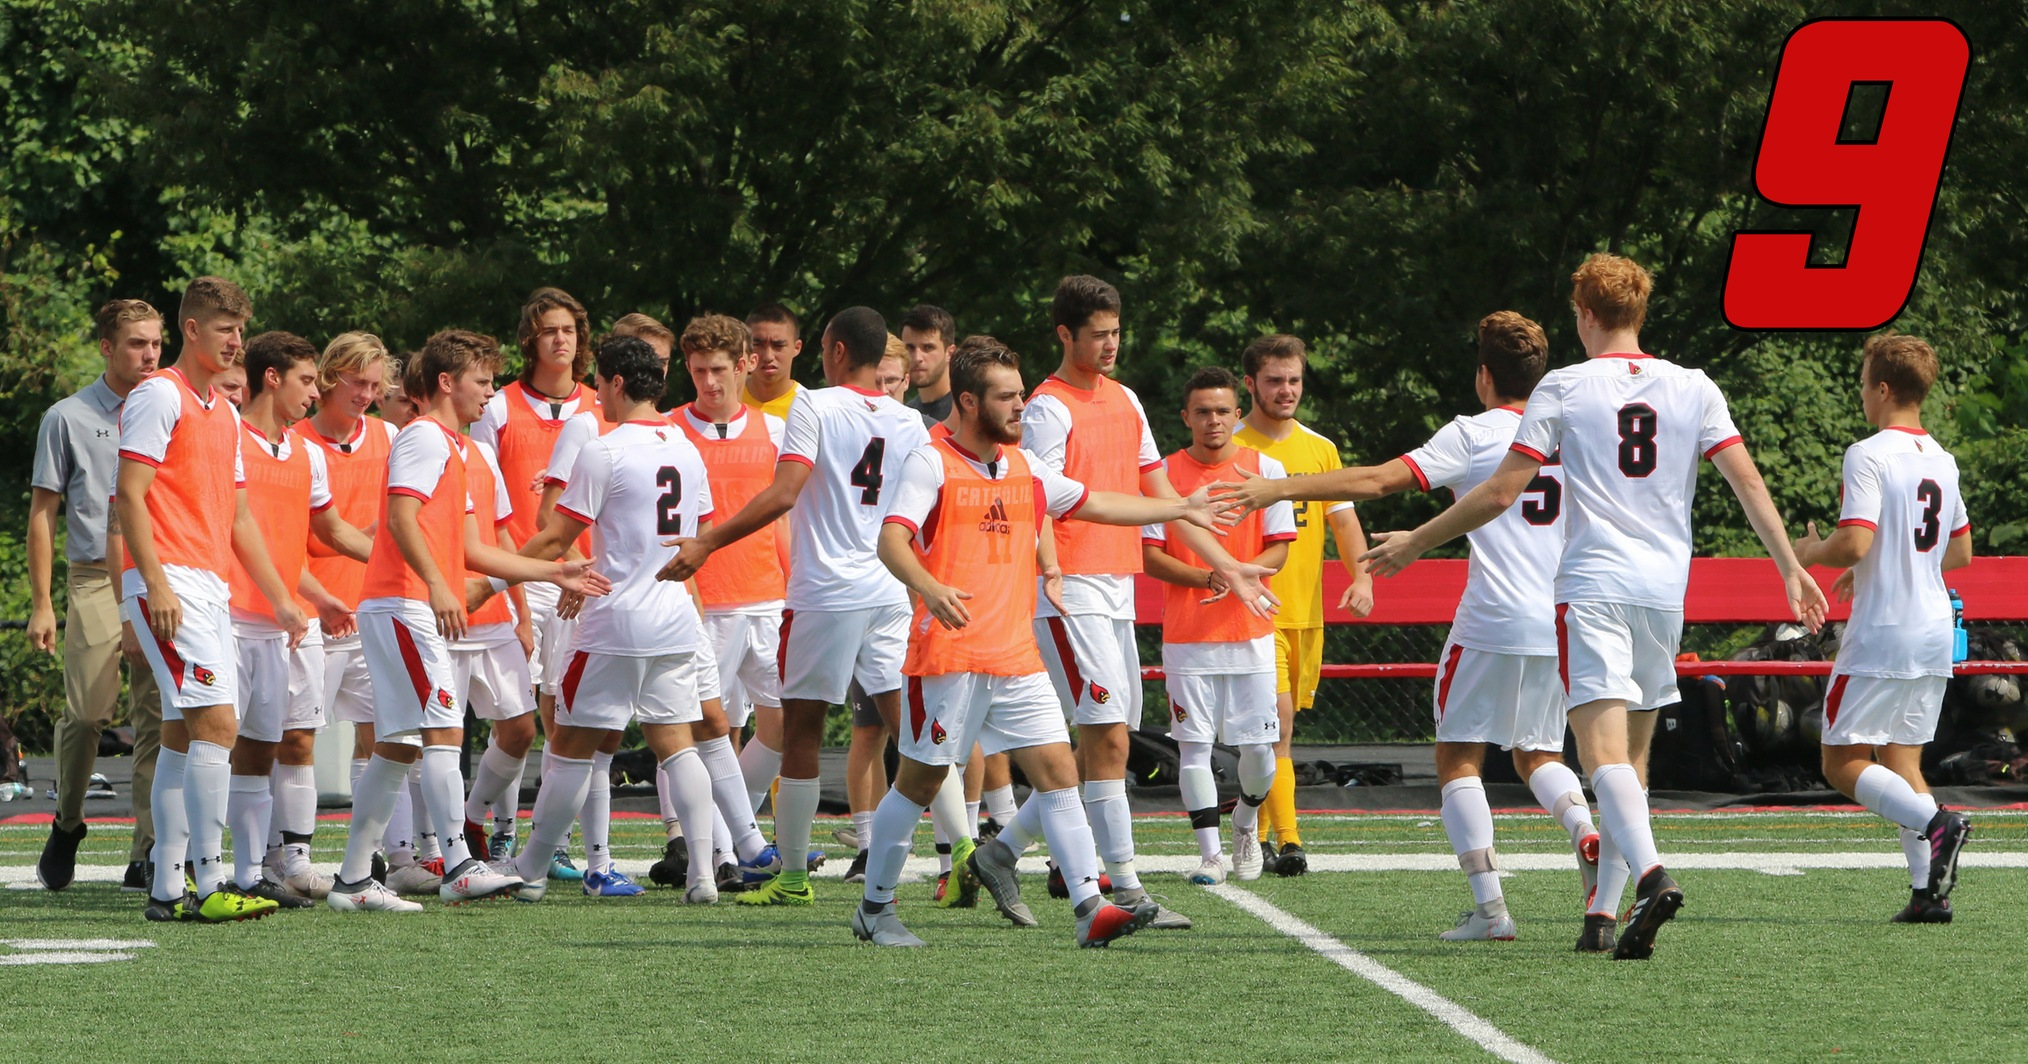 Men's Soccer Moves Up to No. 9 in Mid-Atlantic Region